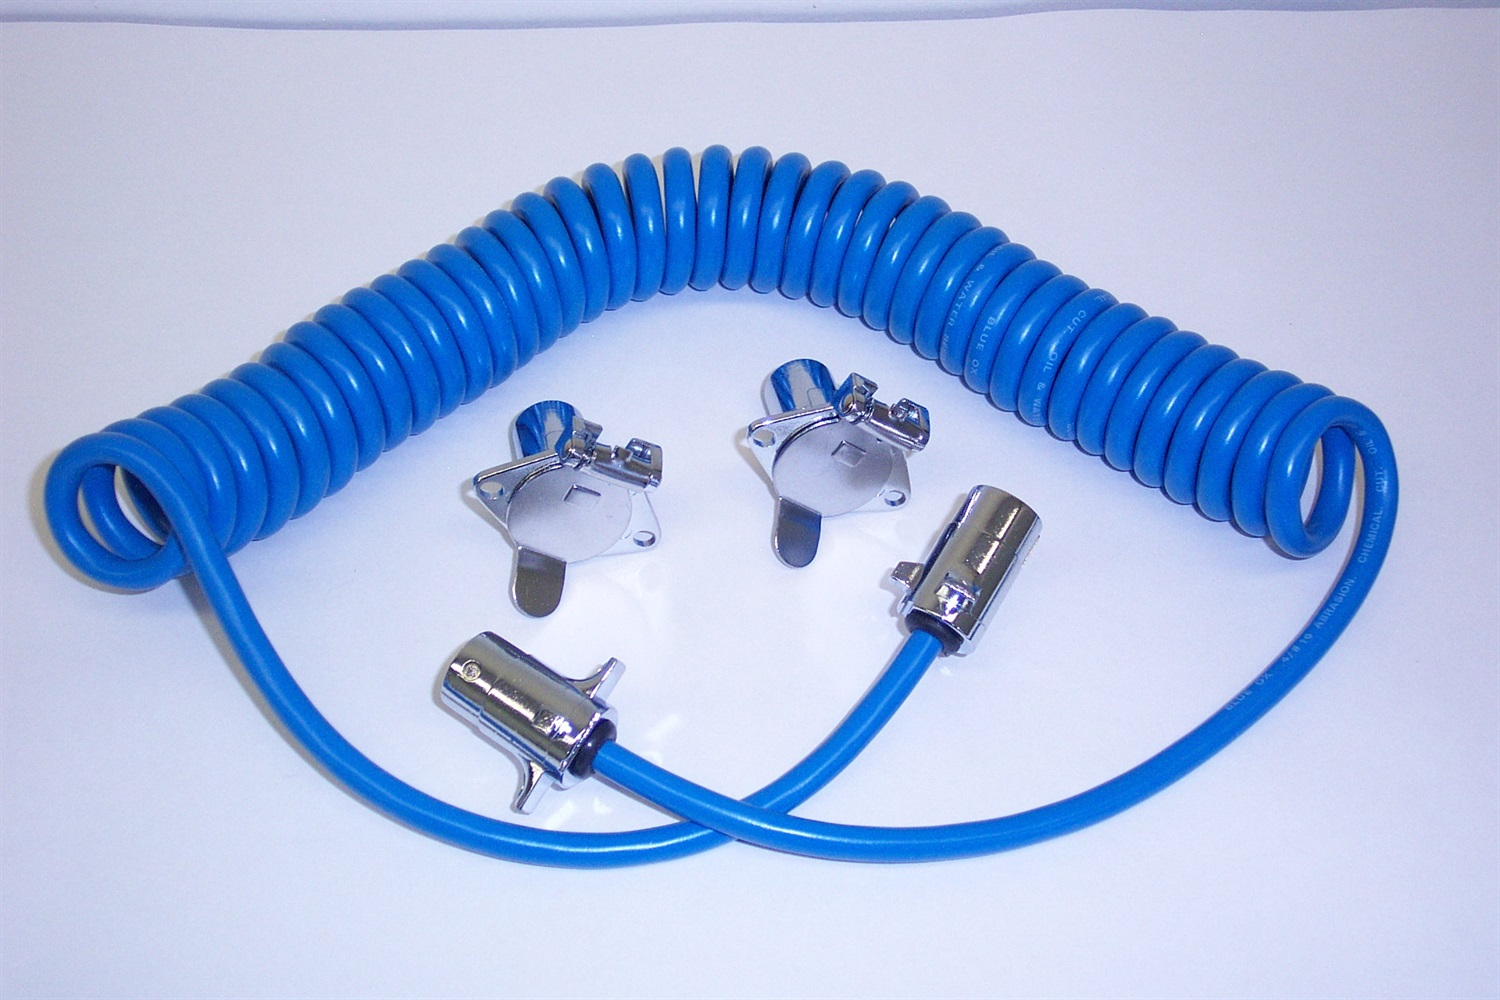 Trailer Coiled Electrical Cables : Blue ox bx trailer wiring harness connector coiled